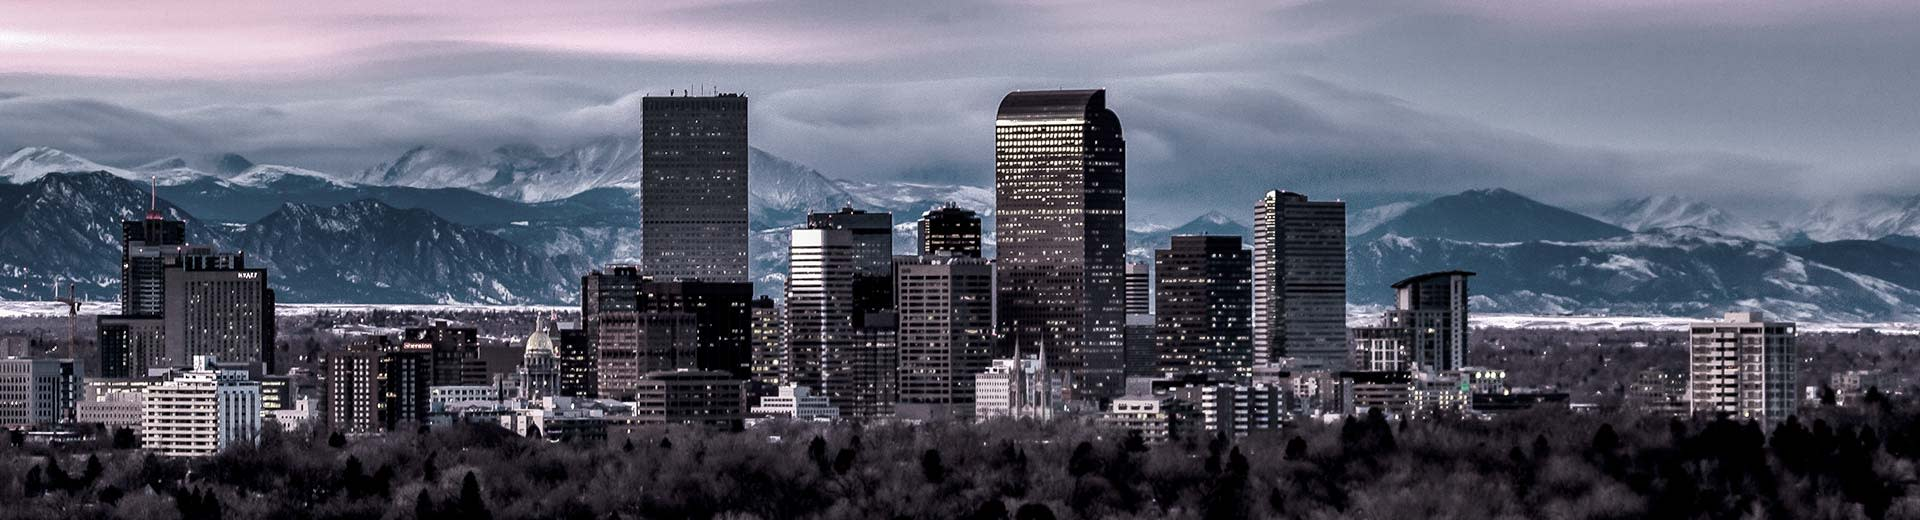 The city of Denver, with the Rocky Mountains in the background and skyscrapers to the fore